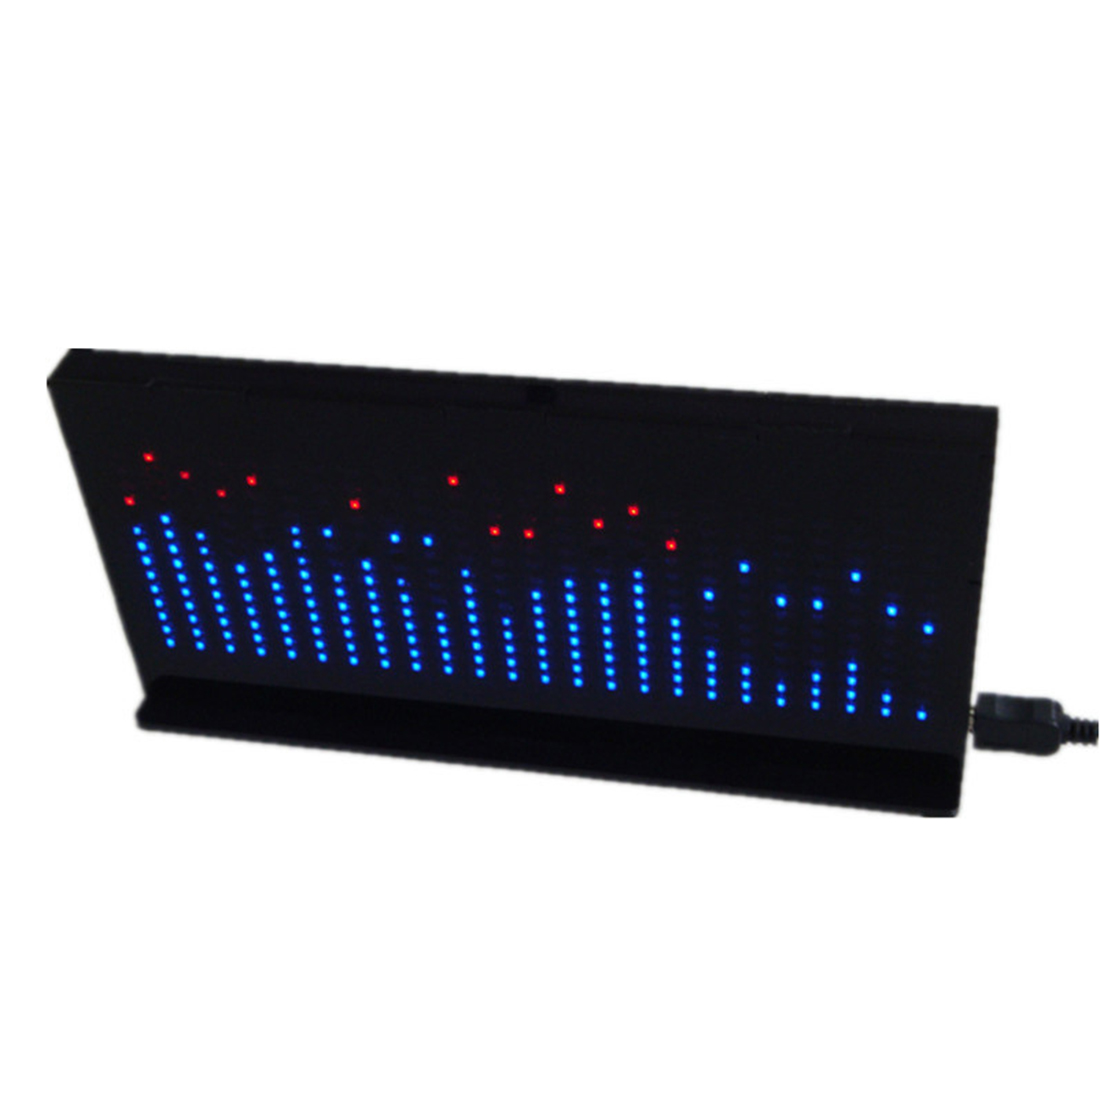 Hot DIY Light Cube Kit AS1424 Music Spectrum LED Display Audio Amplifier Modification Rhythm Lamp - Finished Product Black/White